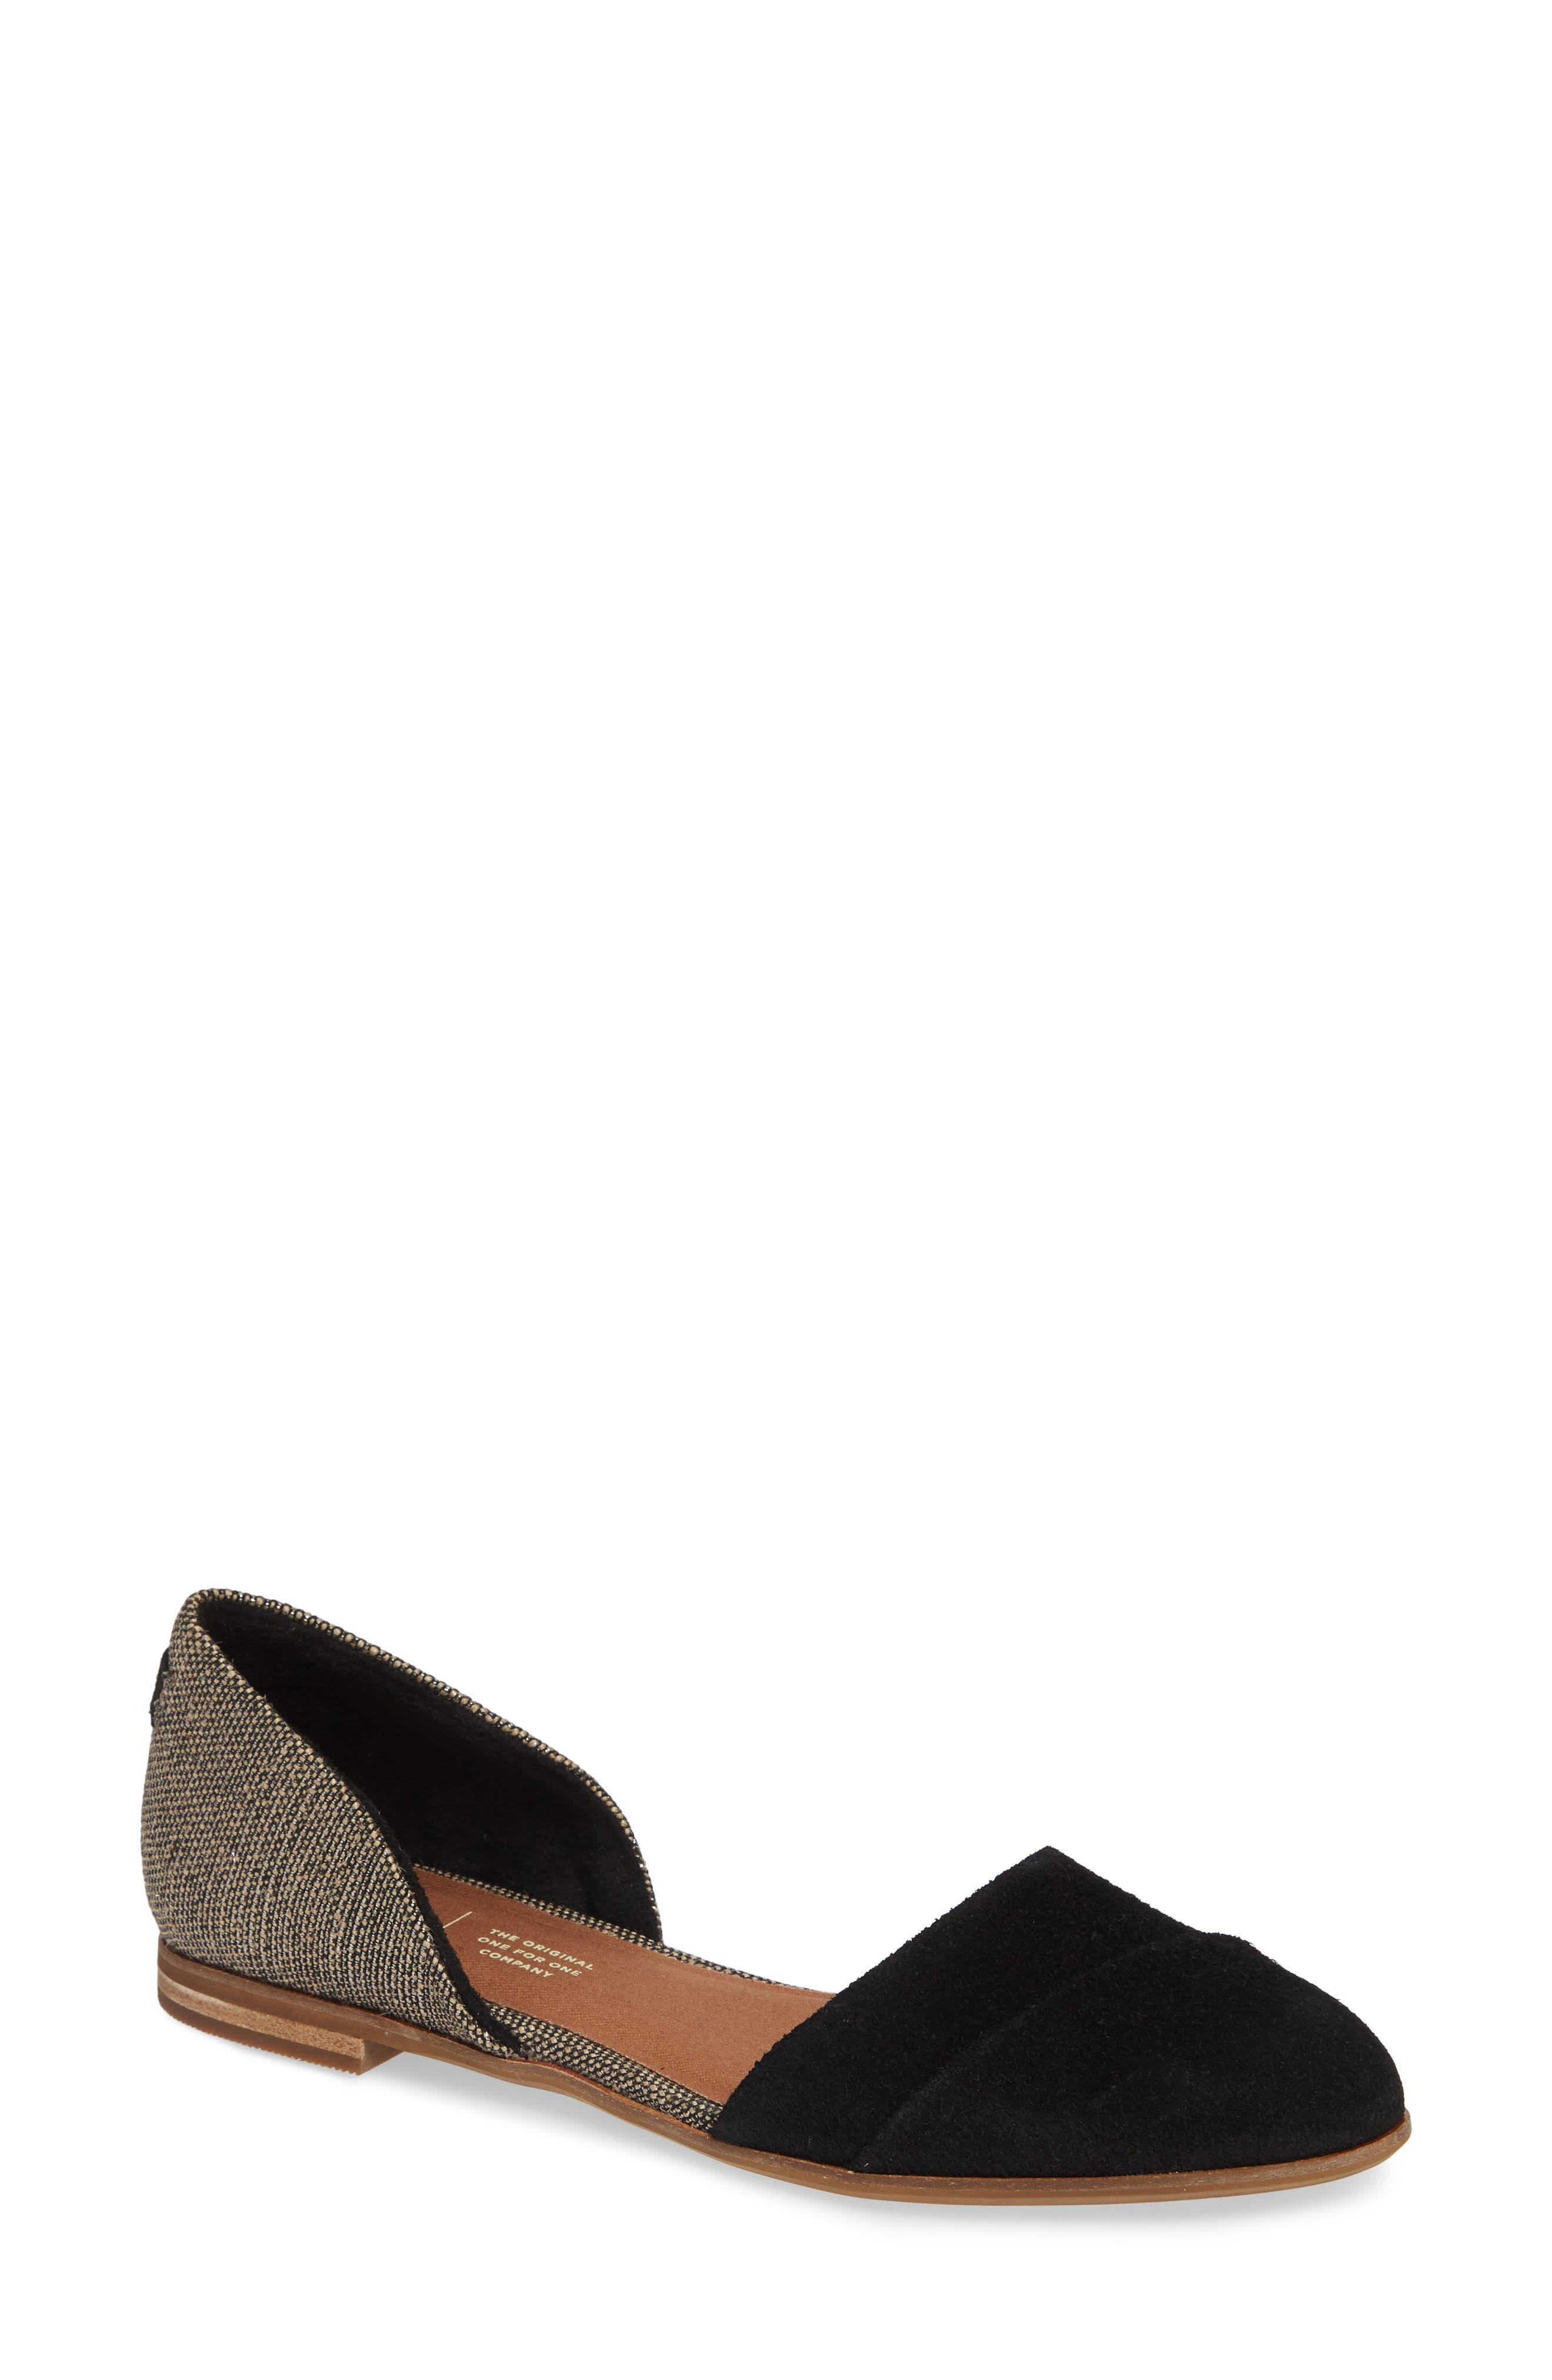 TOMS, Jutti d'Orsay Flat, Main thumbnail 1, color, BLACK SUEDE/ METALLIC WOVEN